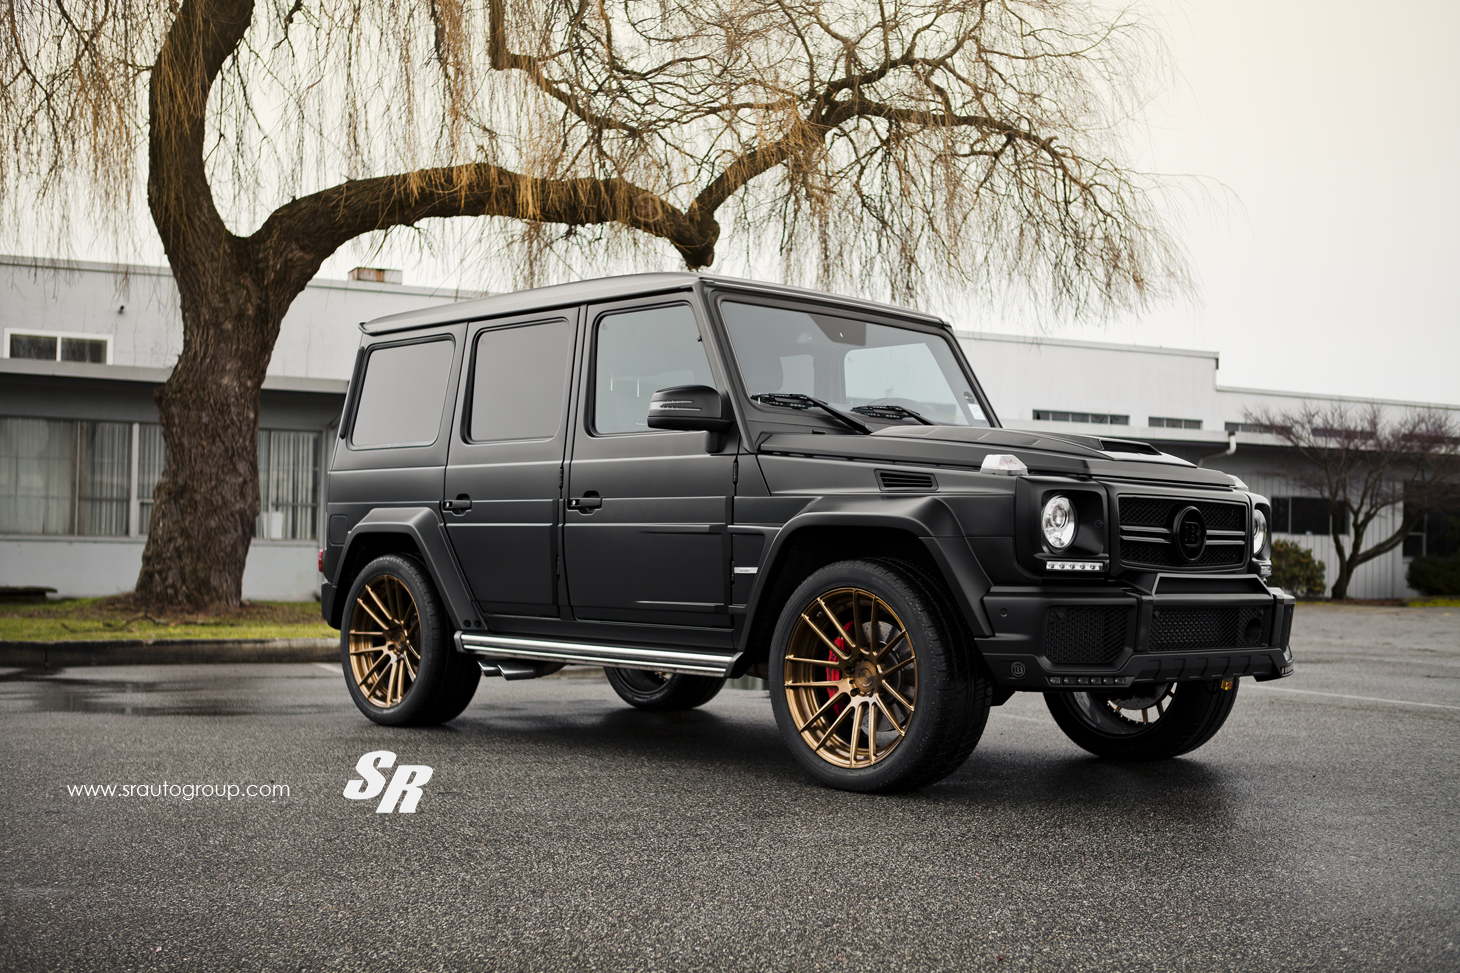 project-gladiator-brabus-widestar-on-adv